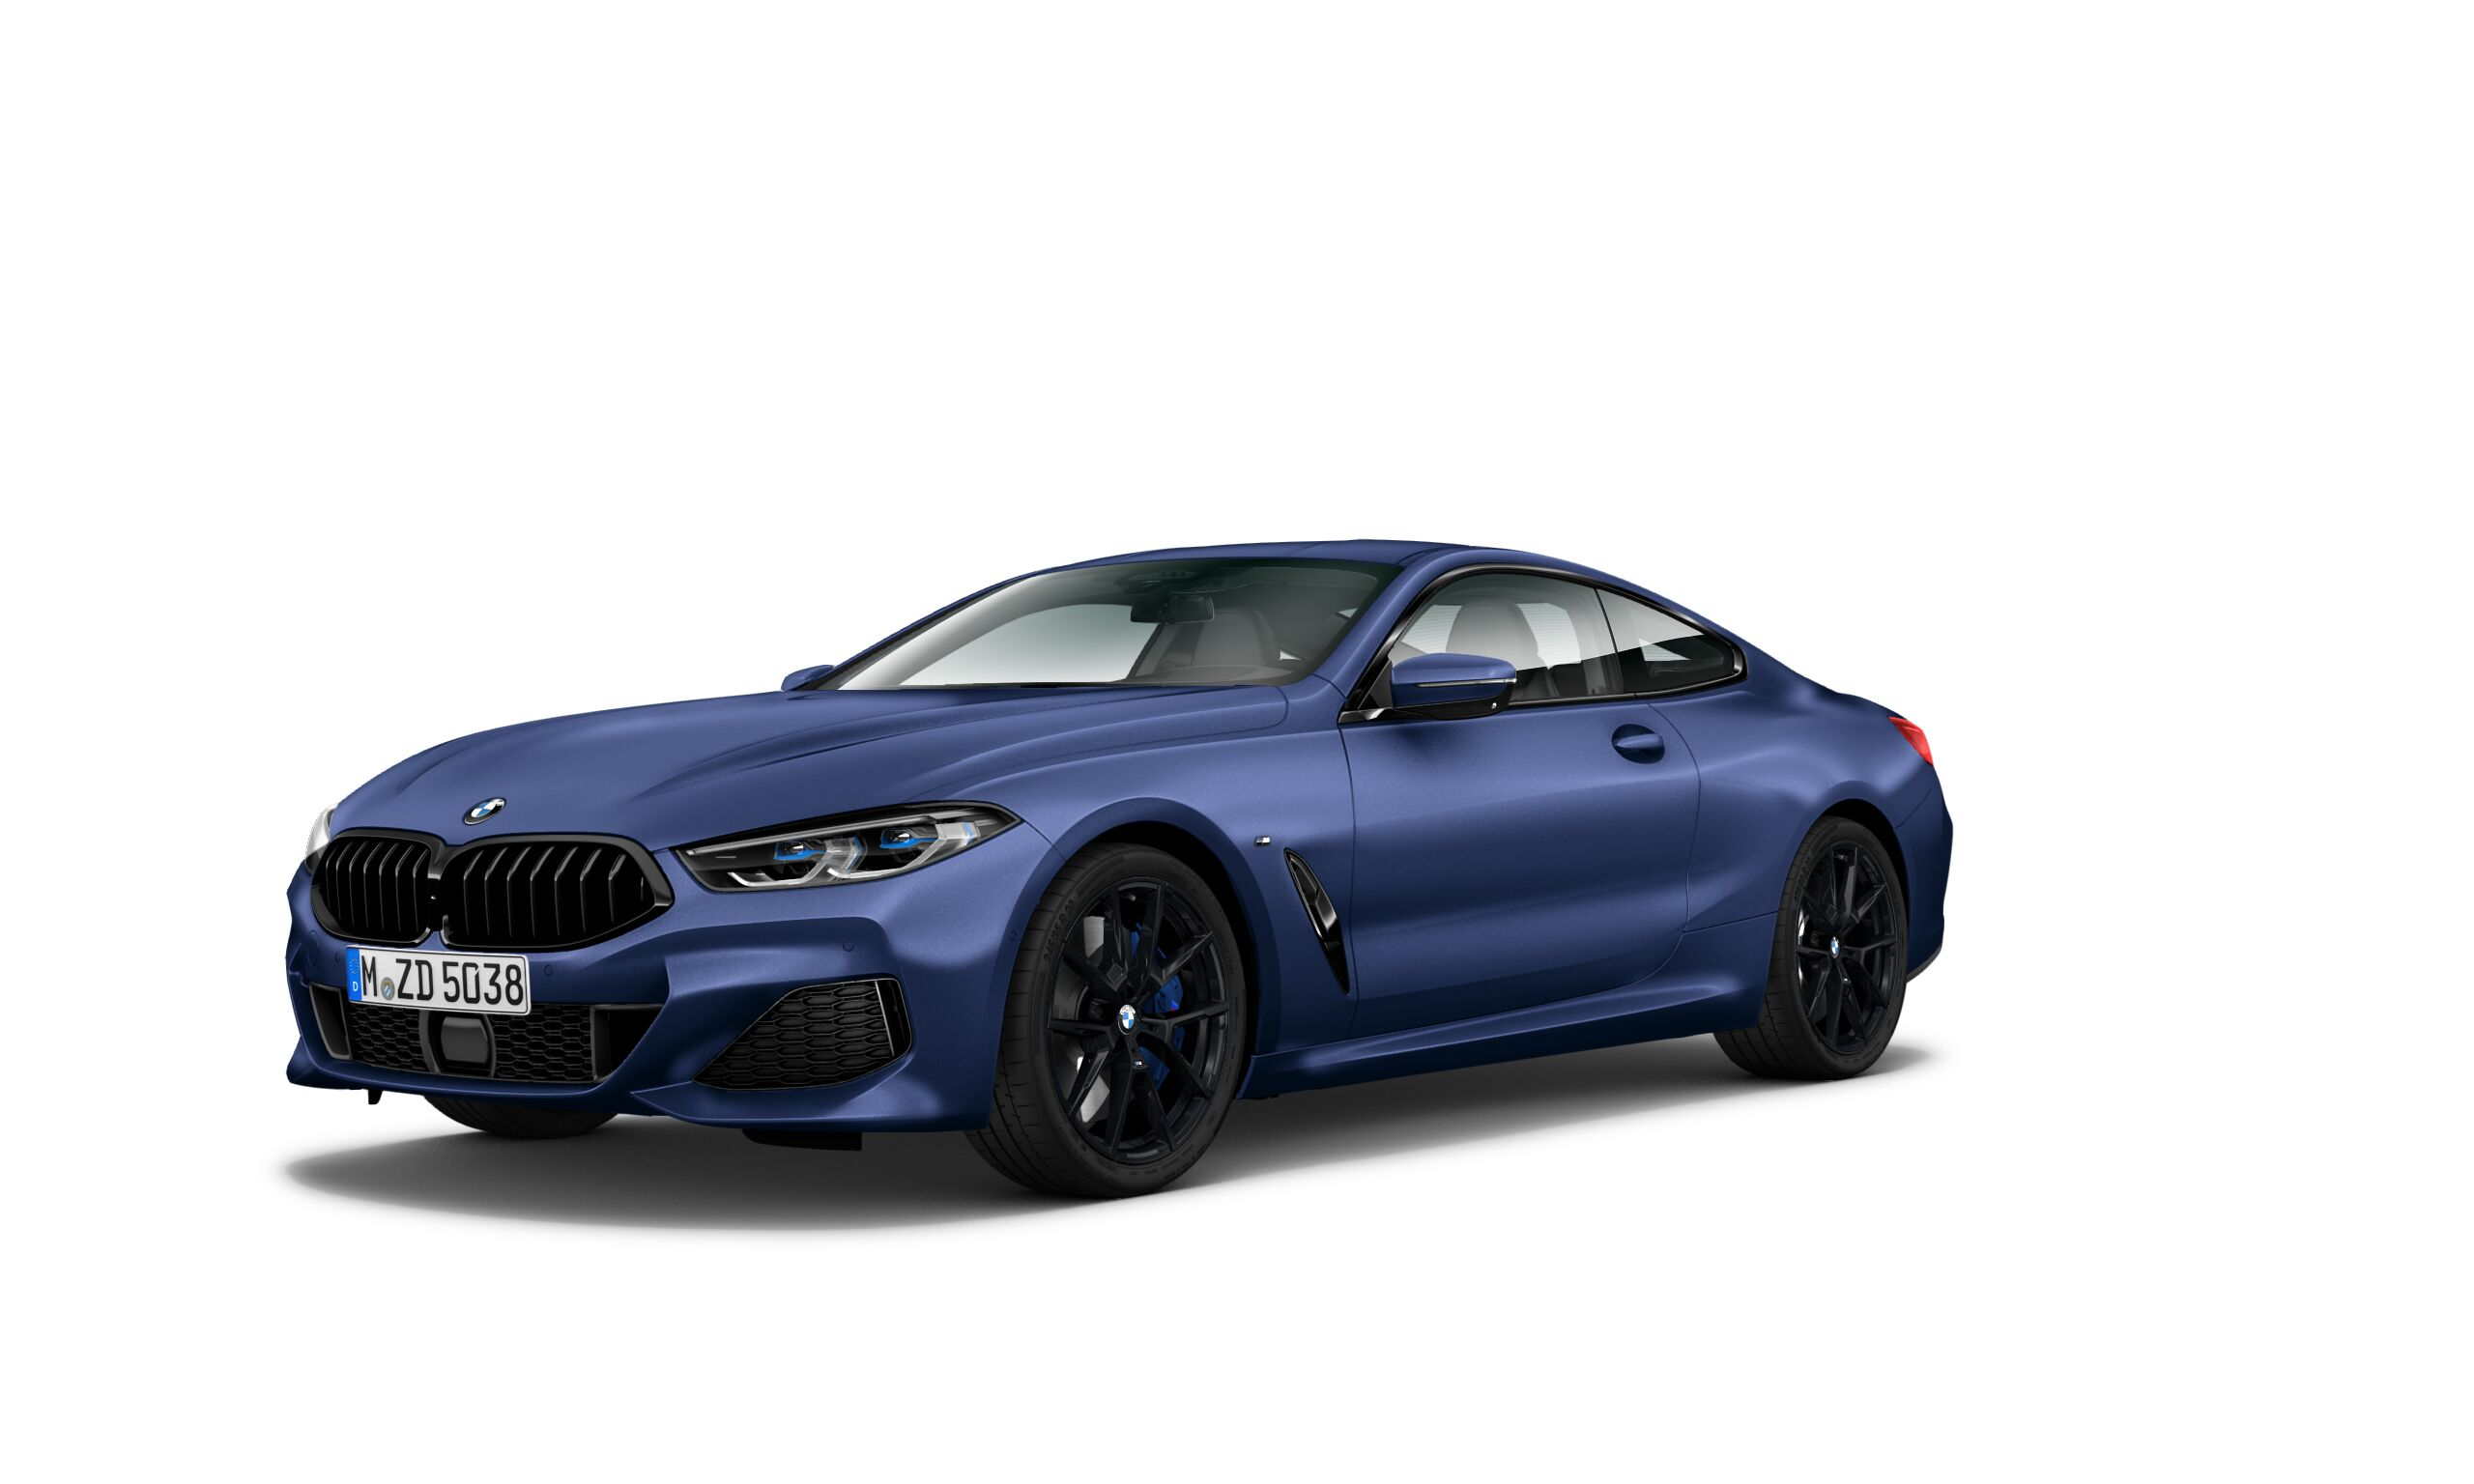 BMW 8 Series Coupe Heritage Edition in Frozen Marina Bay Blue